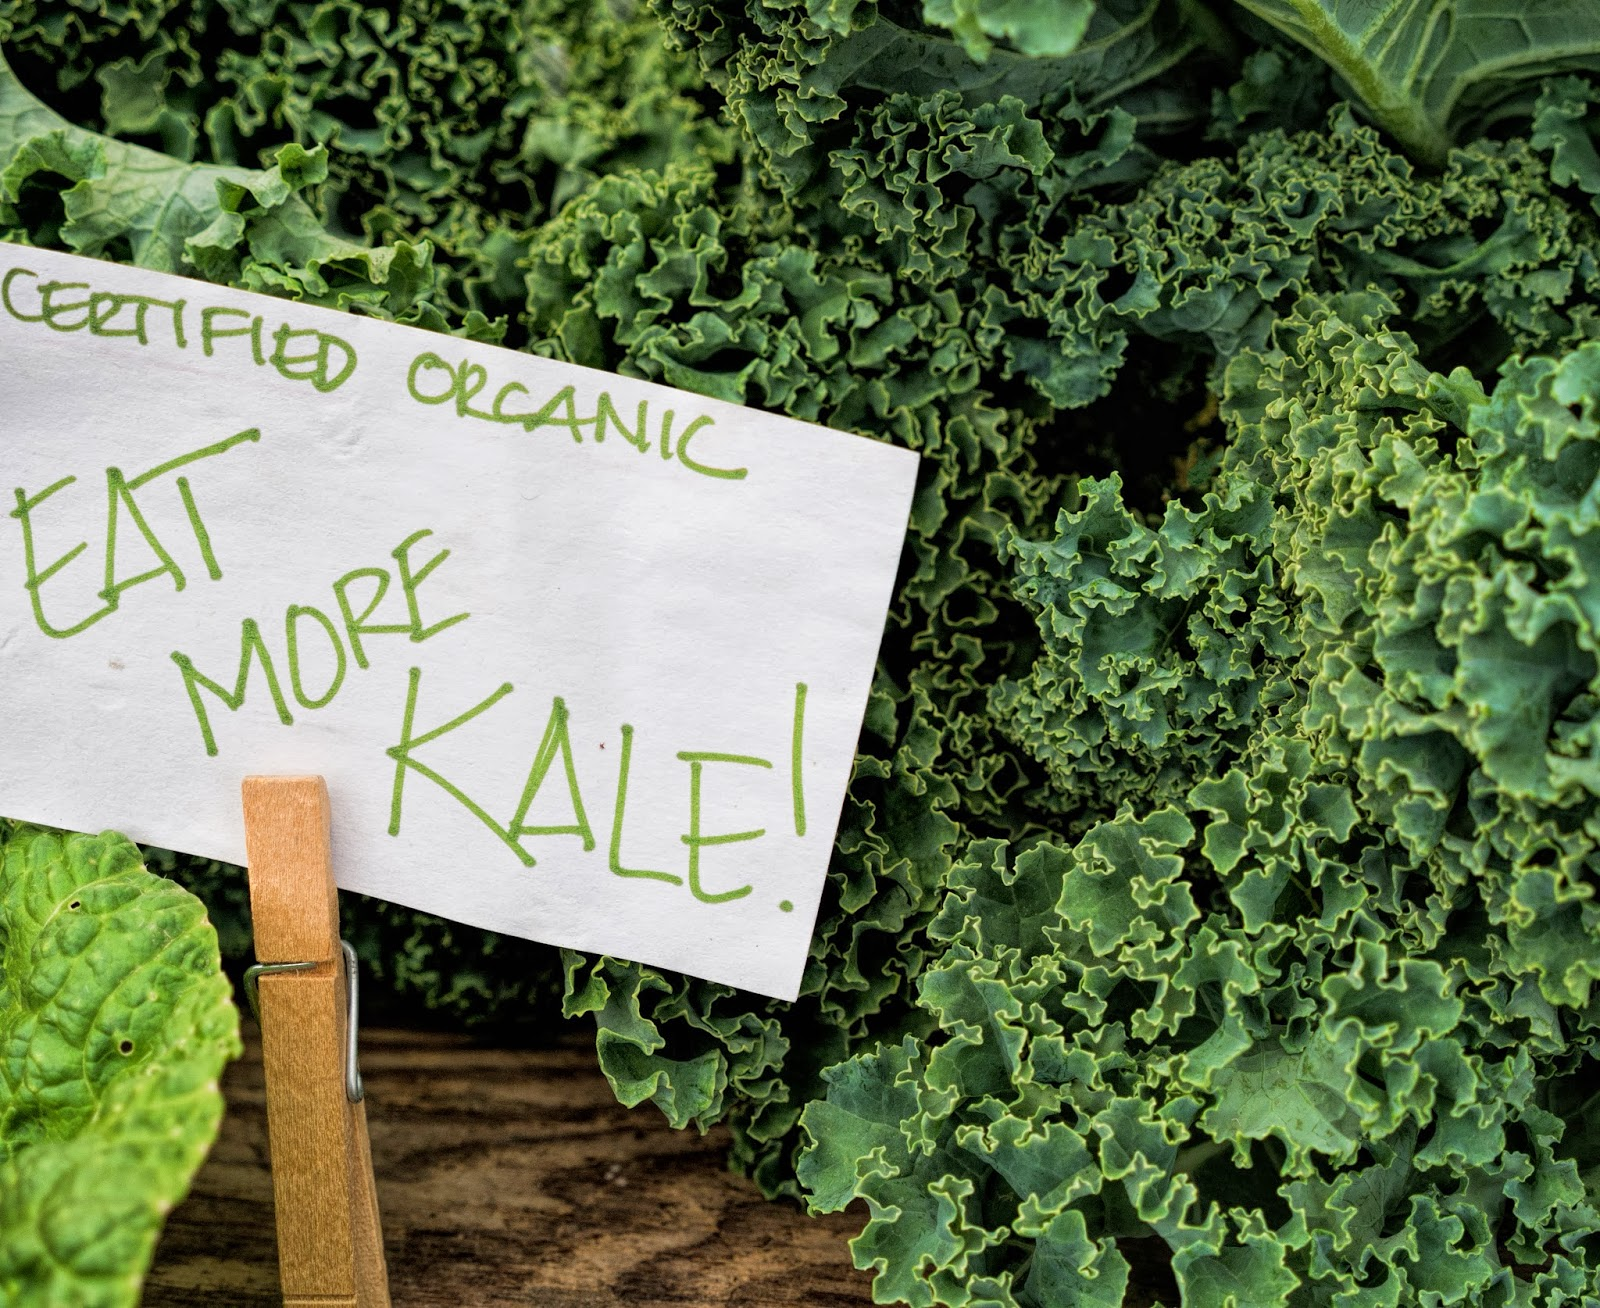 Eat more kale! It's delicious!